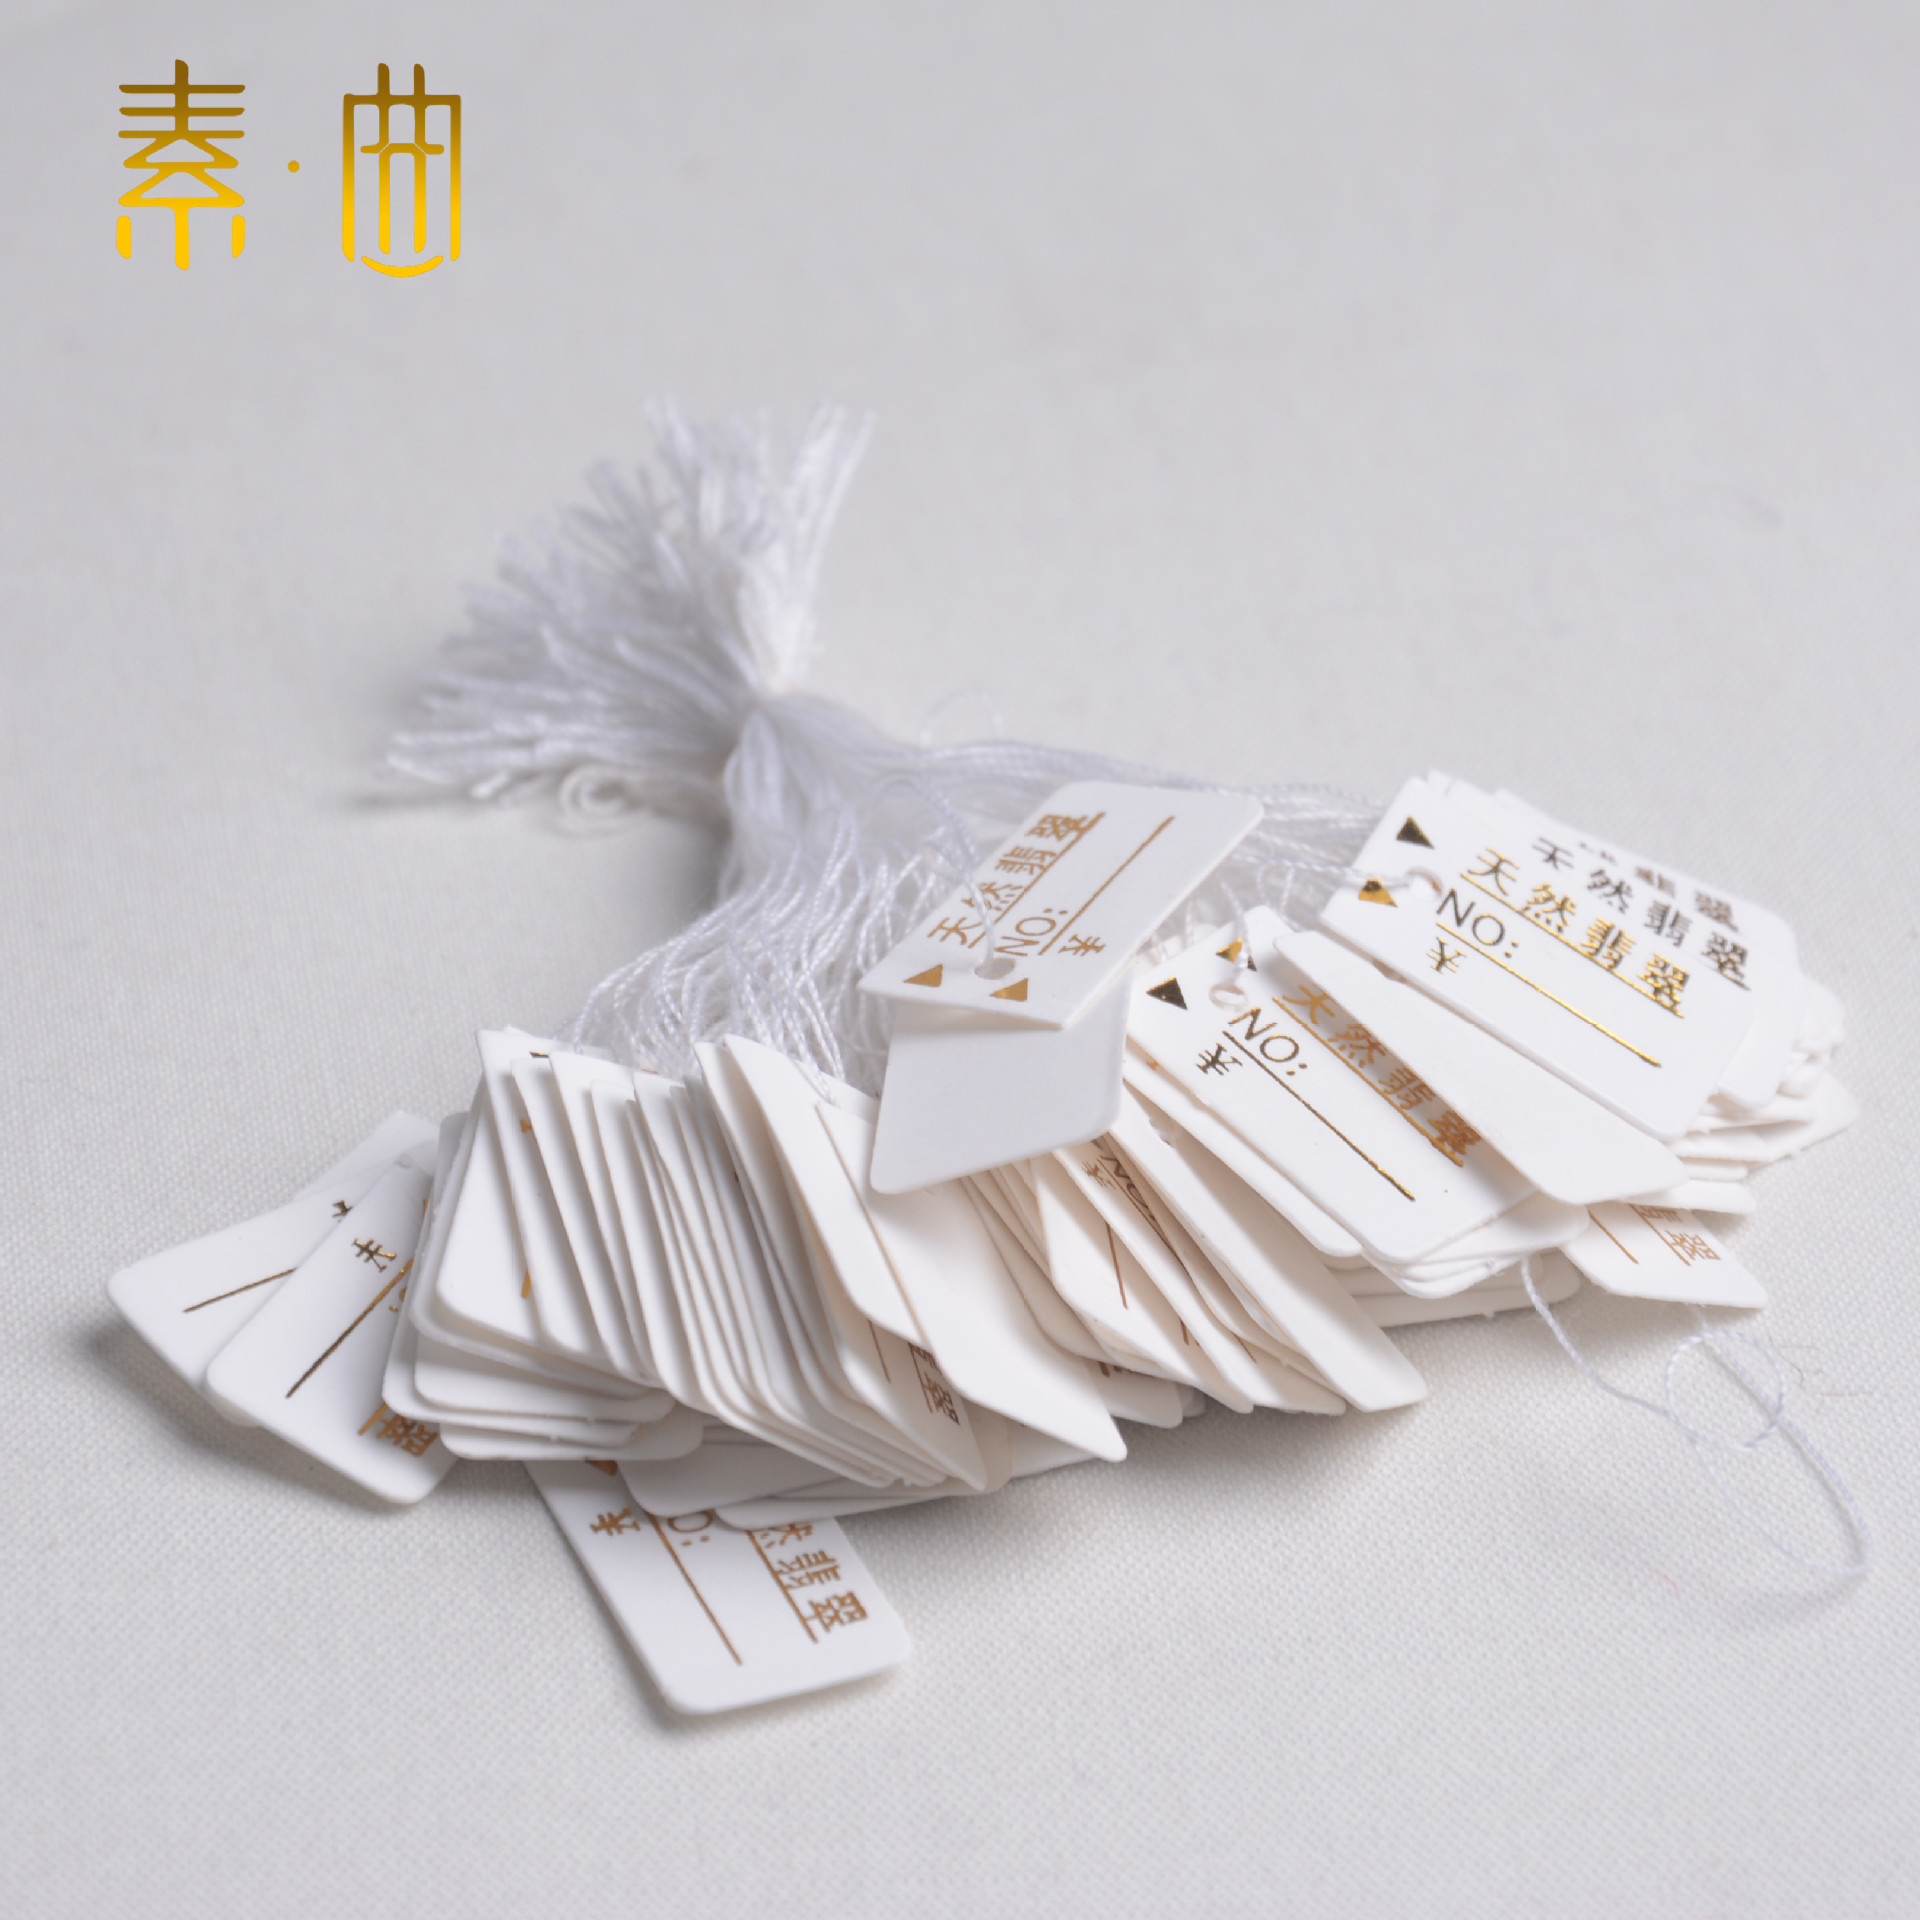 Accessories Jewelry Tag Accessories Blank Commodity Price Label Decorative Pattern Label 100 Price Tag